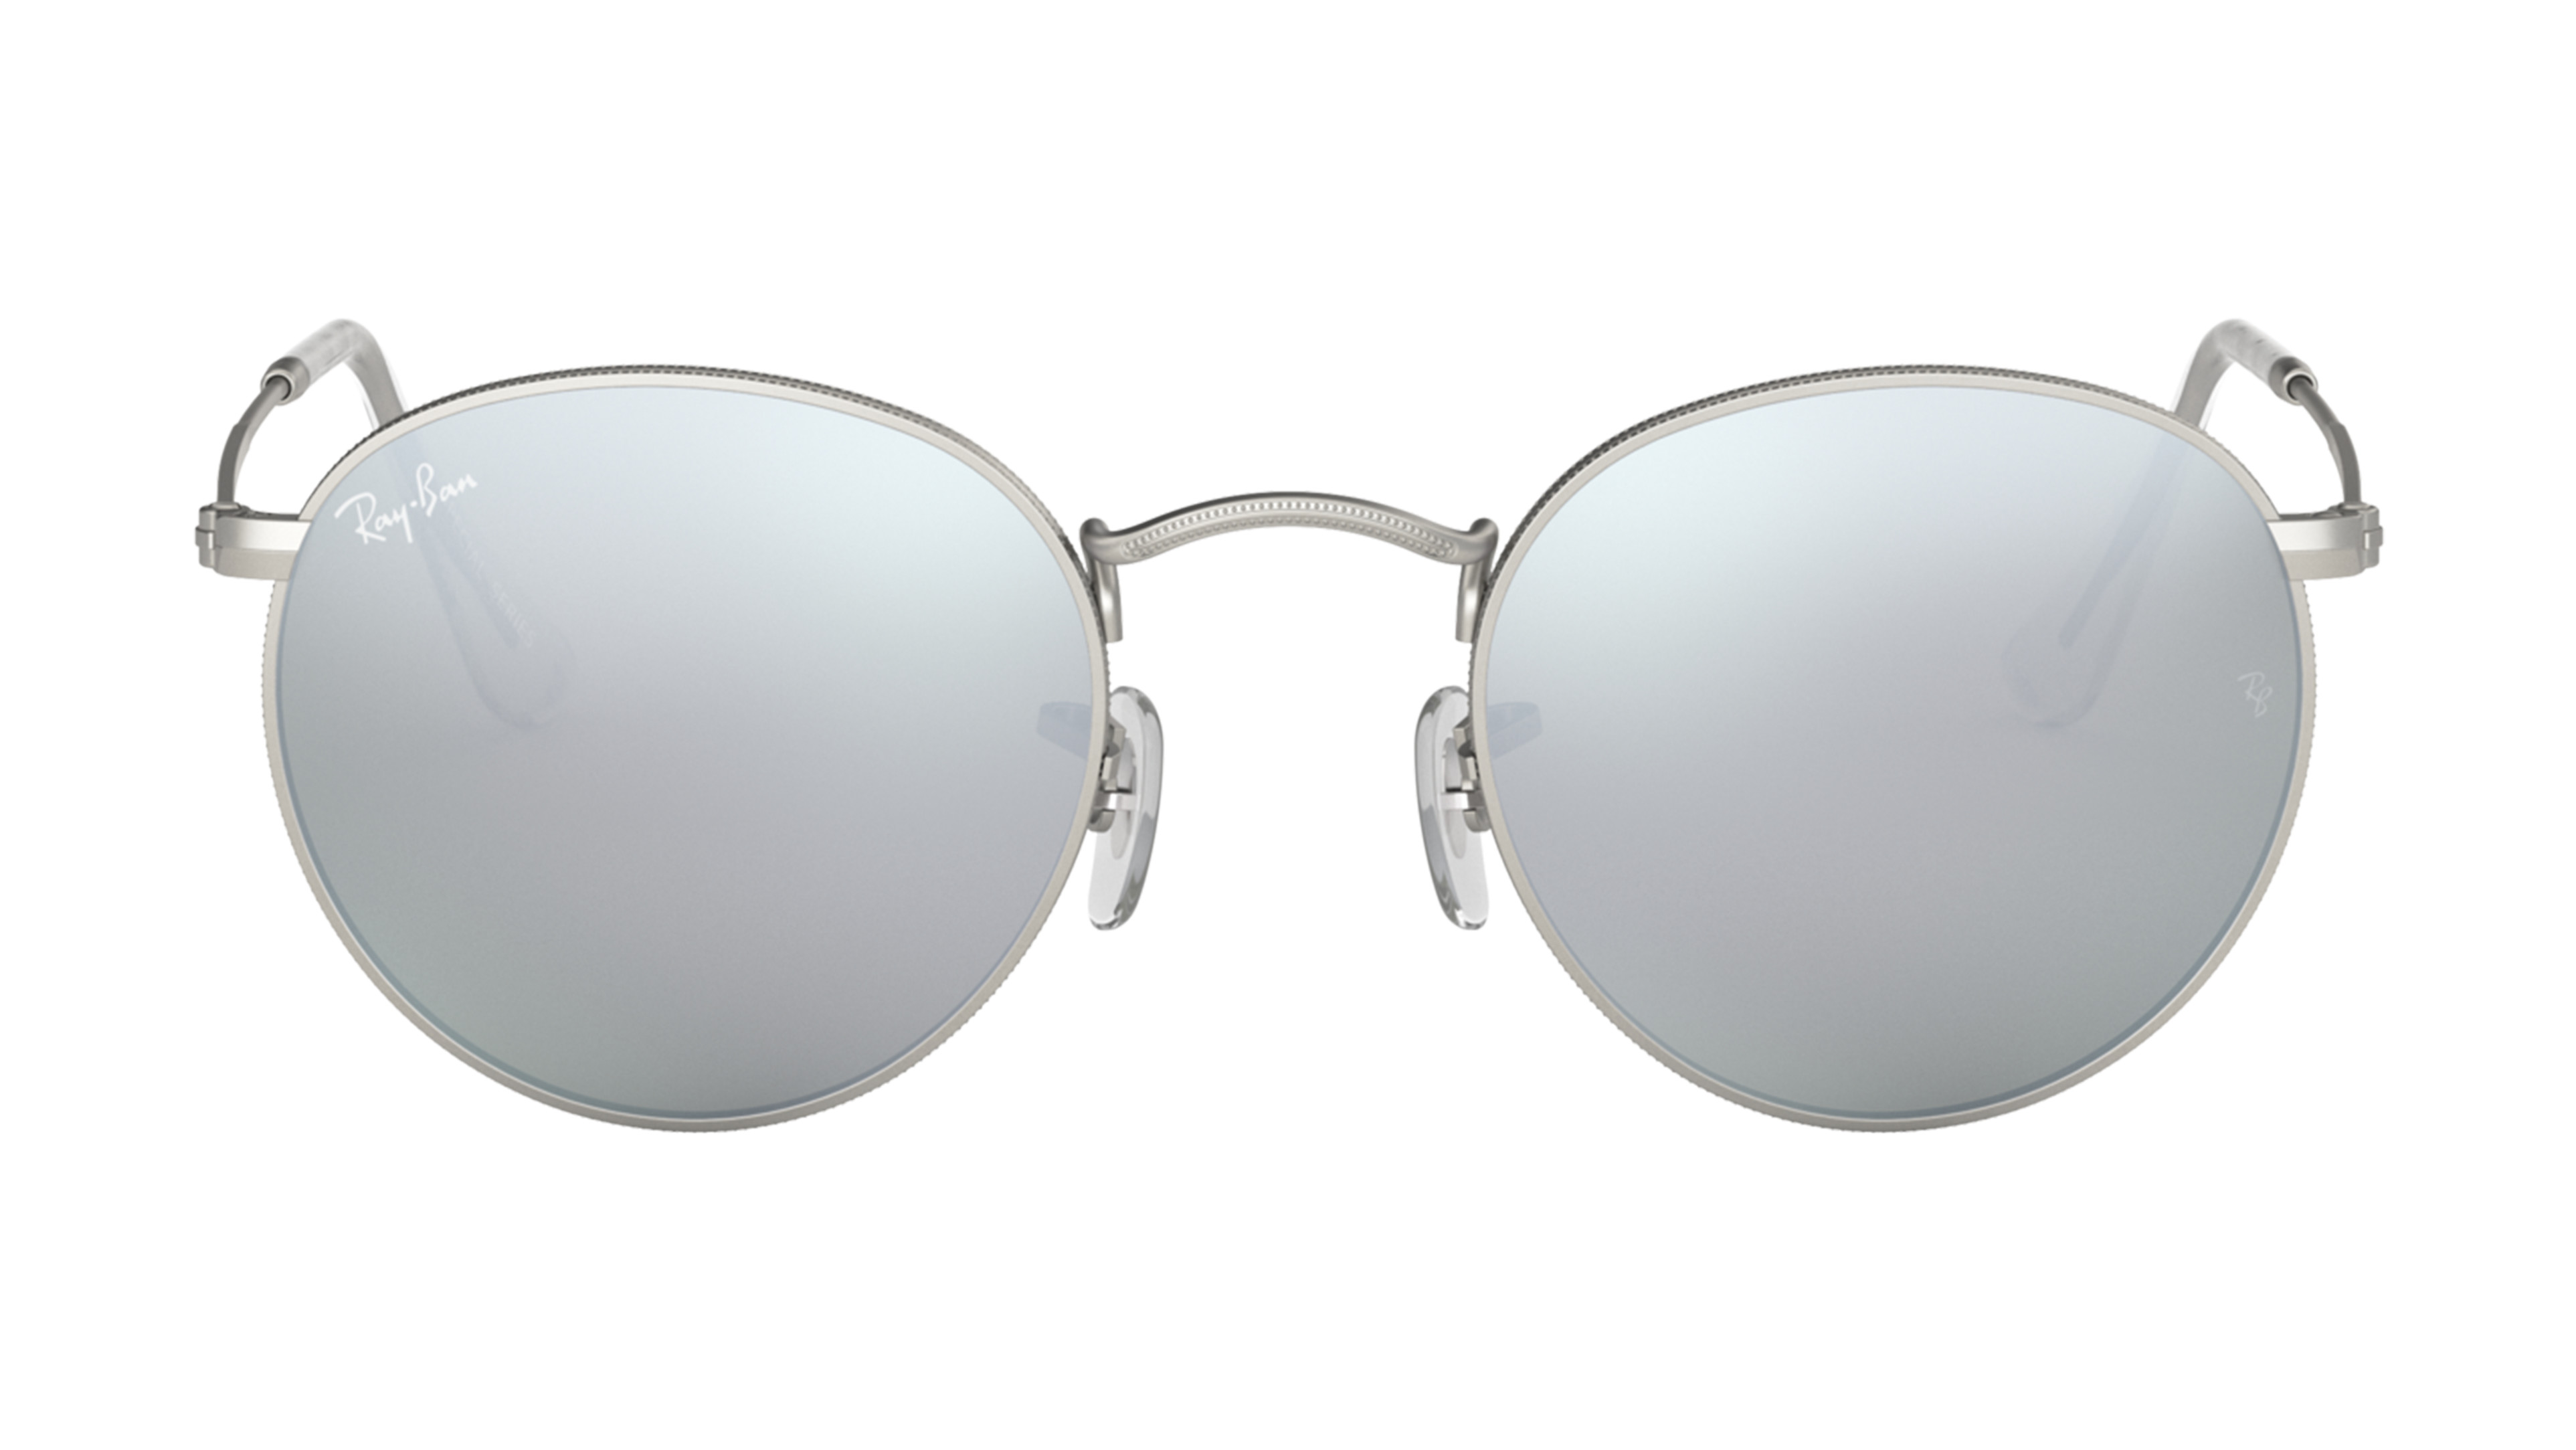 8053672666977-front-Ray-Ban-0RB3447-019-30